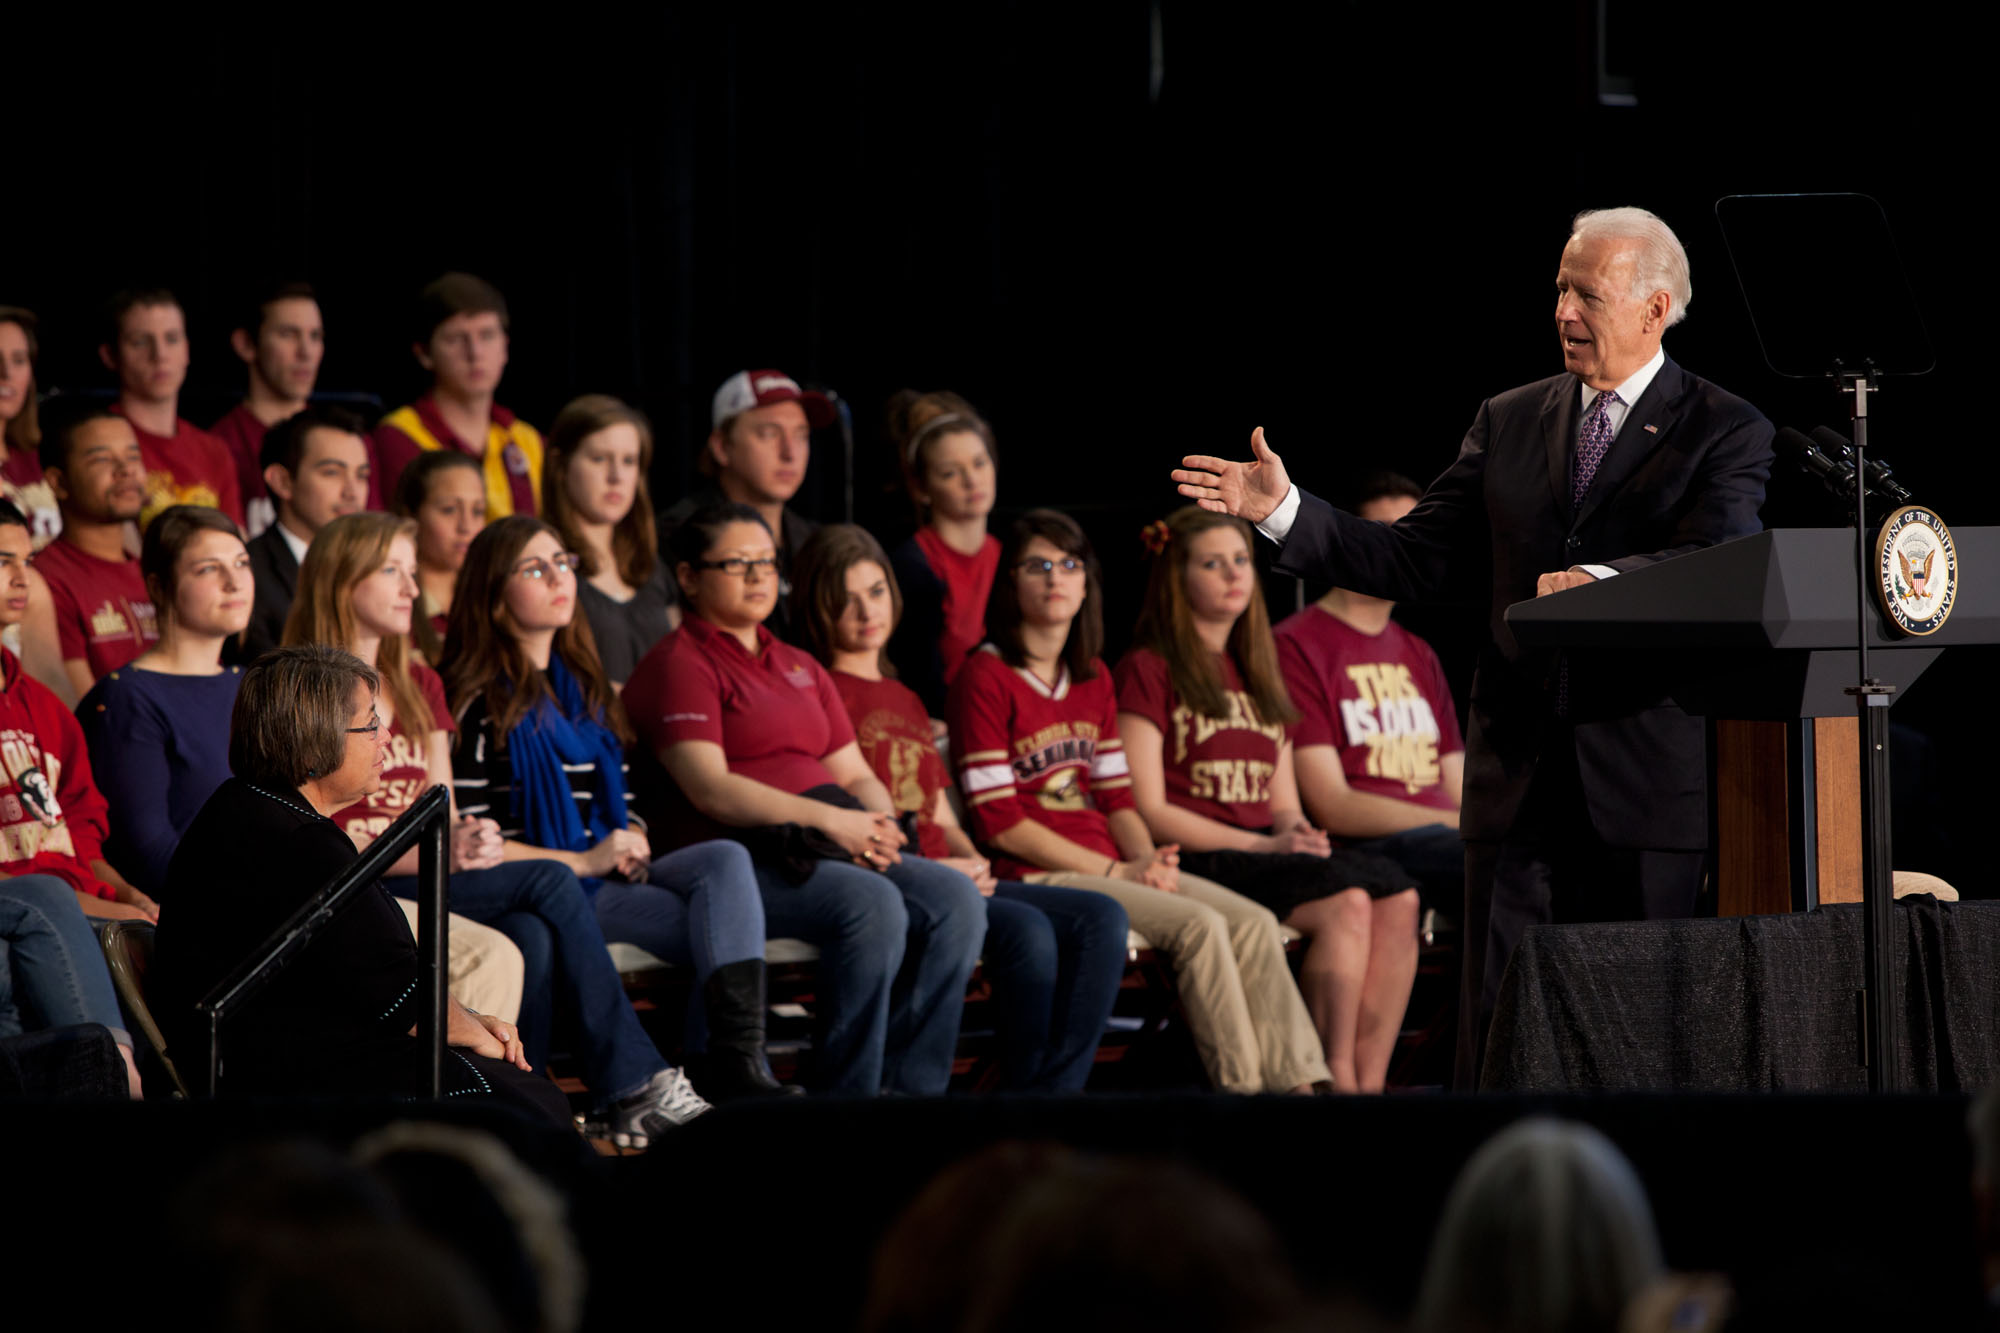 Vice President Joe Biden speaks to FSU students (February 8, 2012)